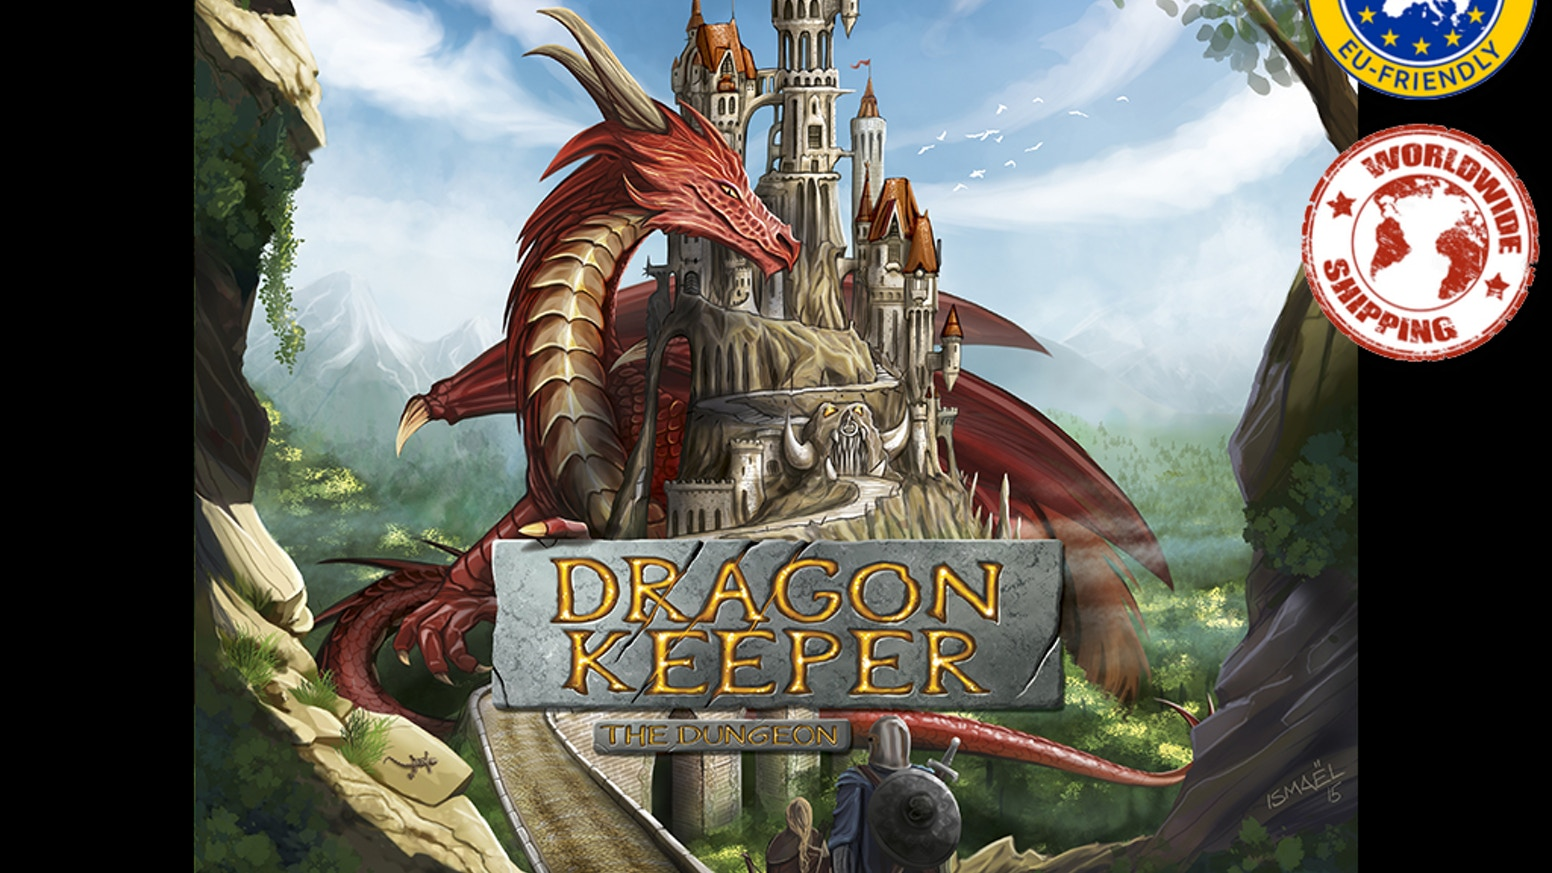 Dragon Keeper - the dungeon by Arnaud Urbon — Kickstarter